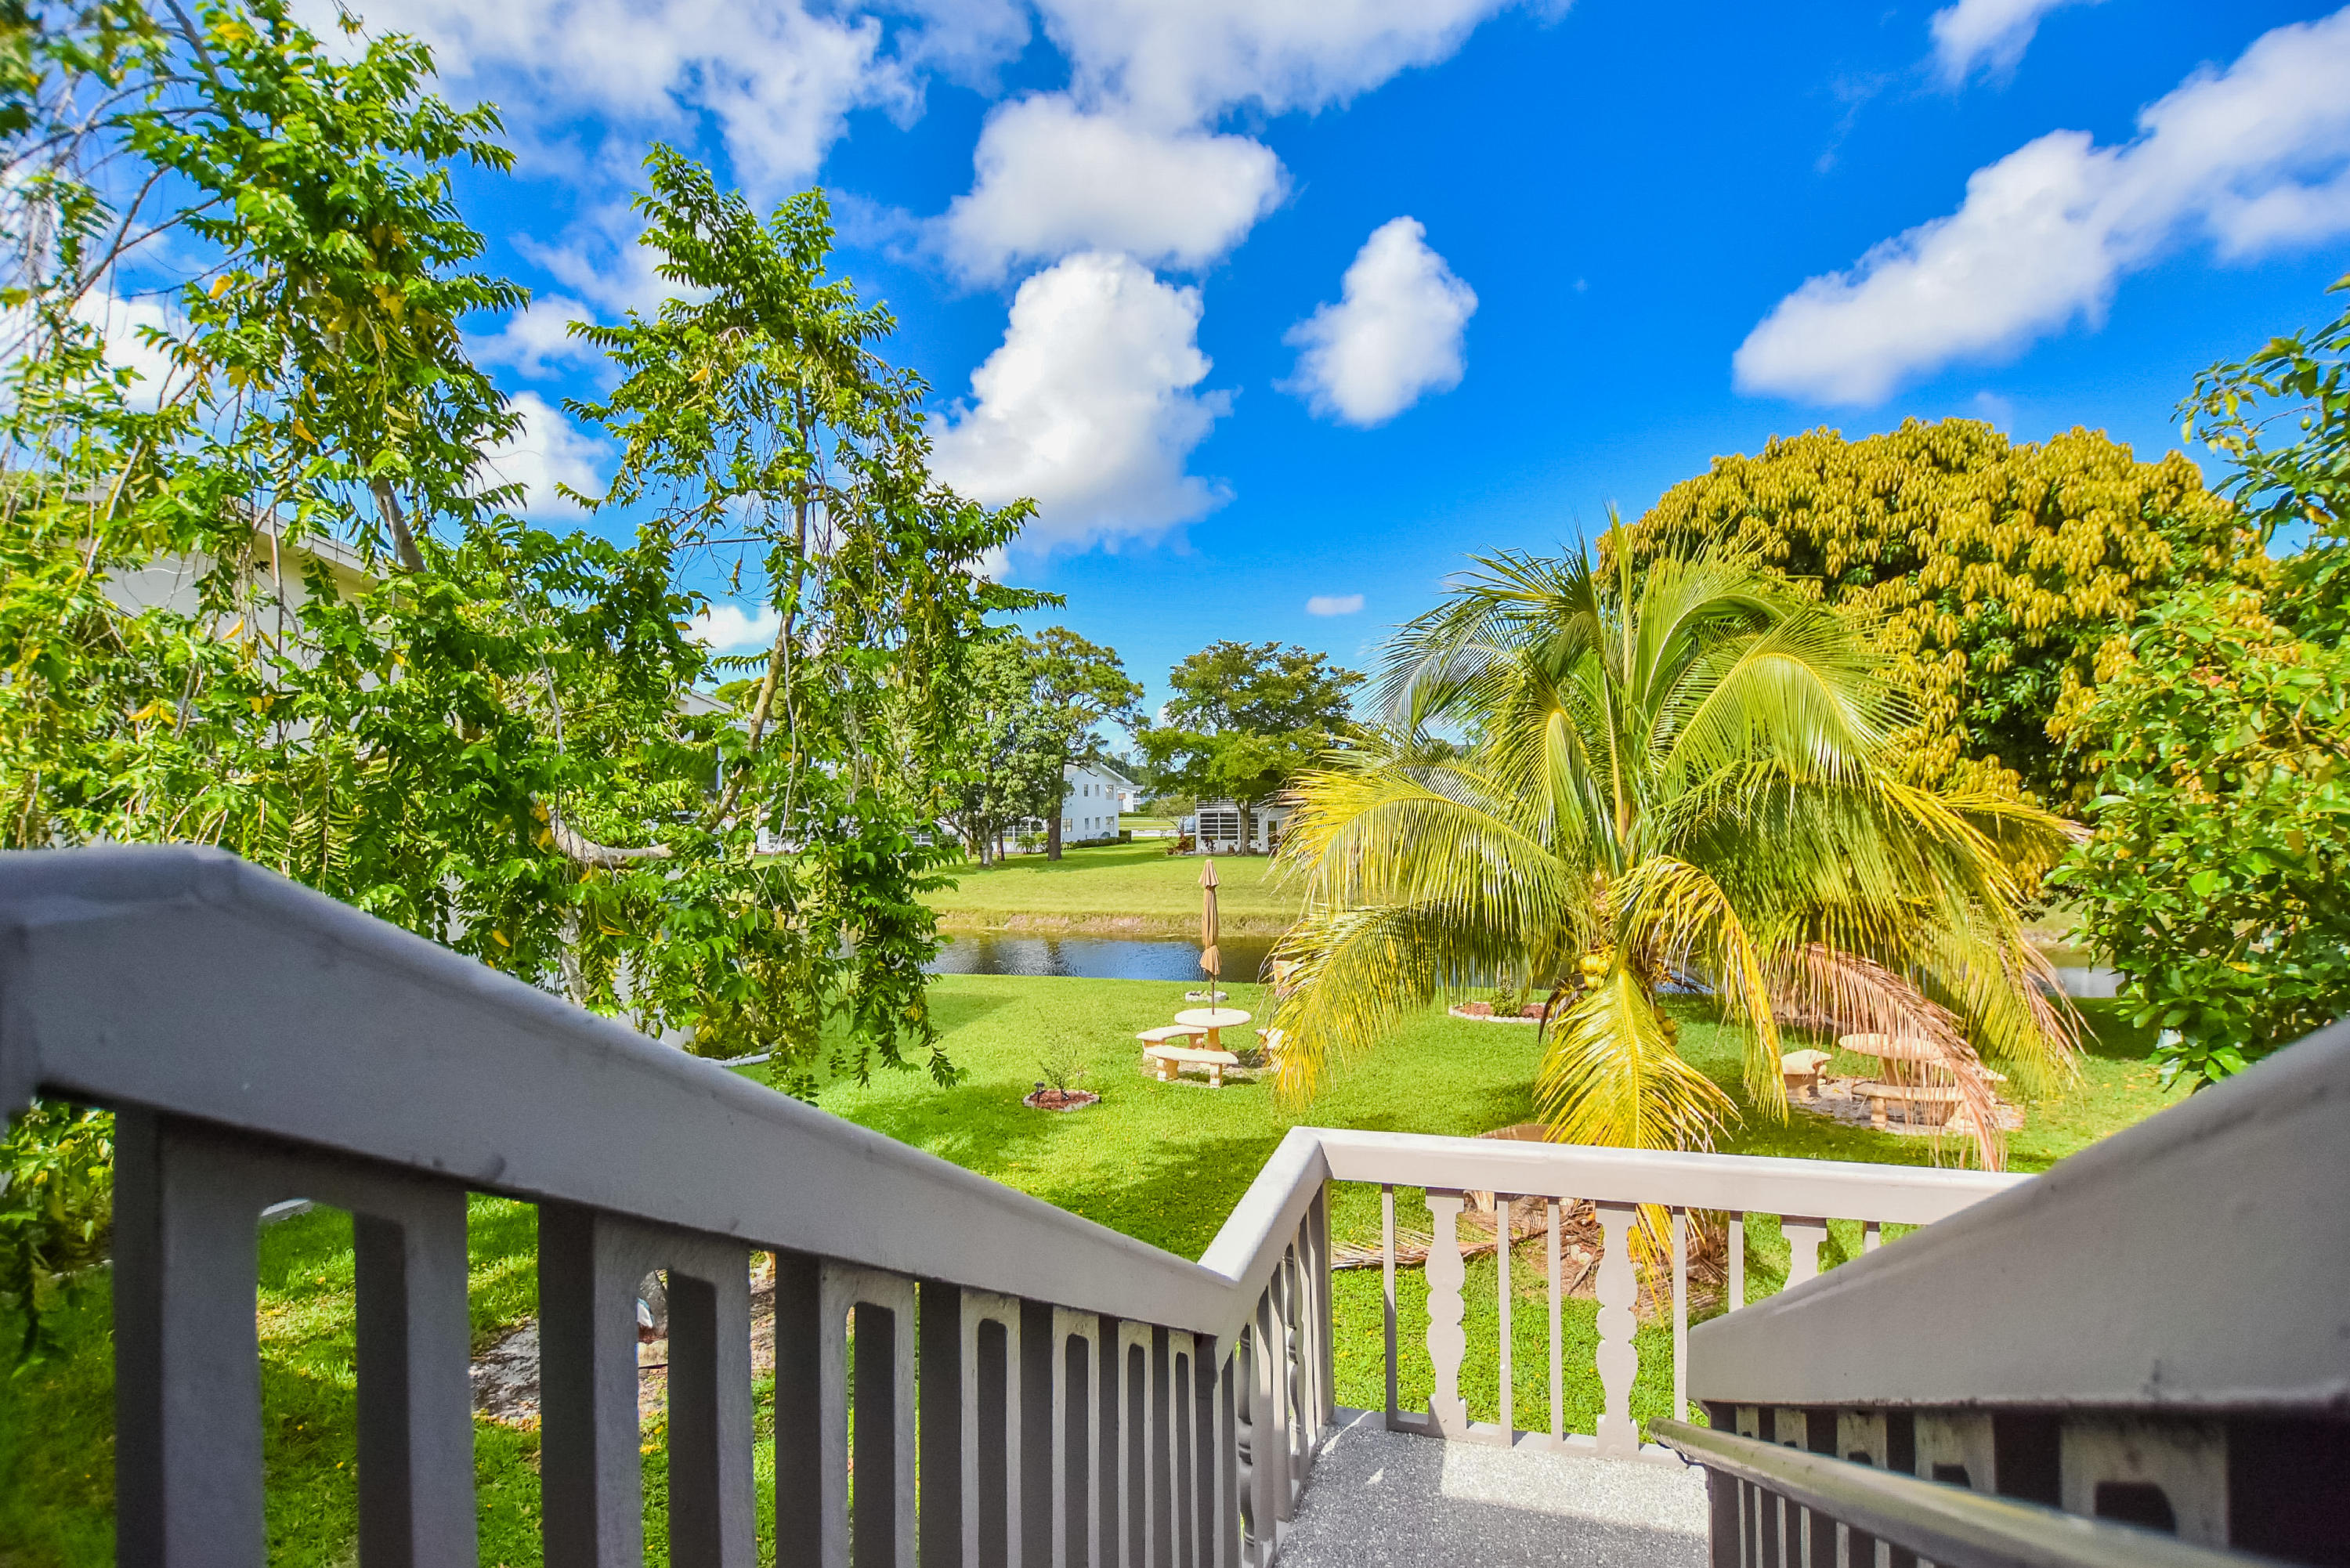 18 Markham A, Deerfield Beach, Florida 33442, 1 Bedroom Bedrooms, ,1 BathroomBathrooms,Residential,for Rent,Century Village,Markham A,RX-10586893, , , ,for Rent